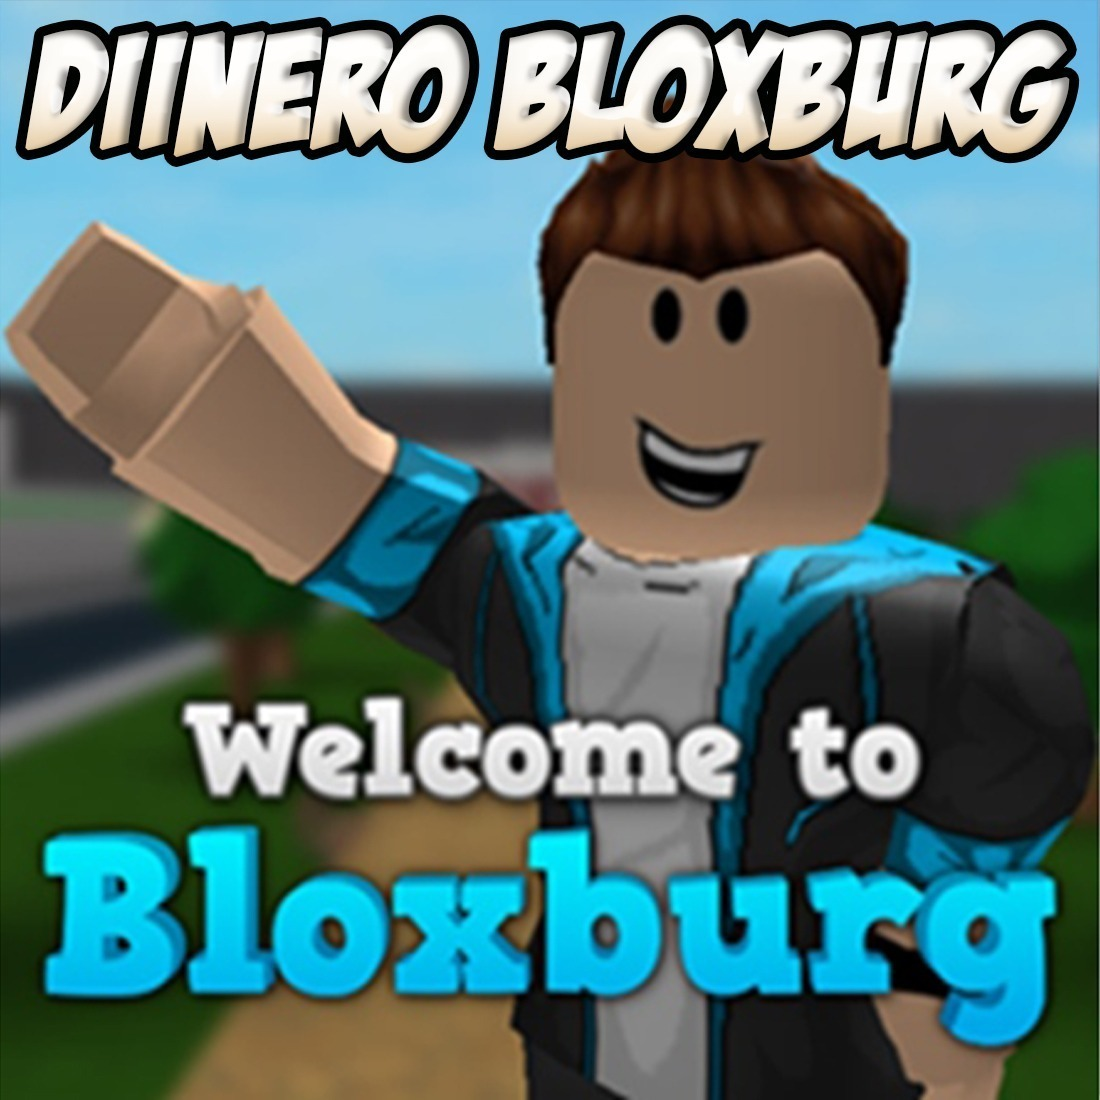 Robux 100000 Dinero Bloxburg - how much robux does the owner of bloxburg have